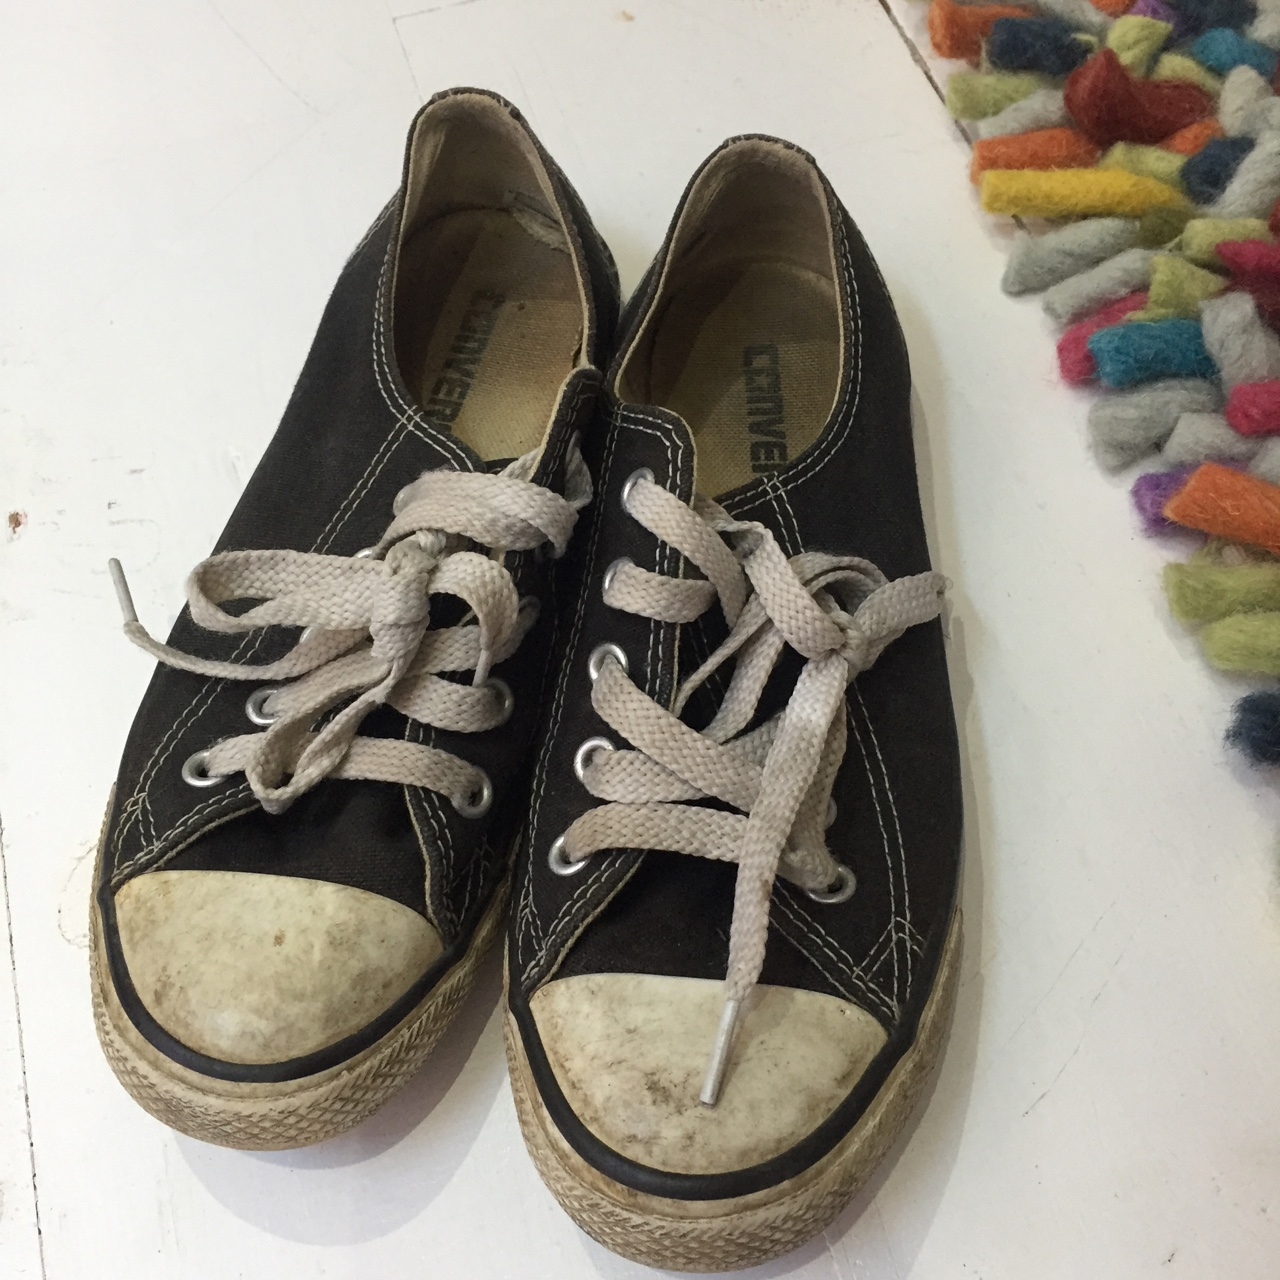 V old black converse, in need of a good